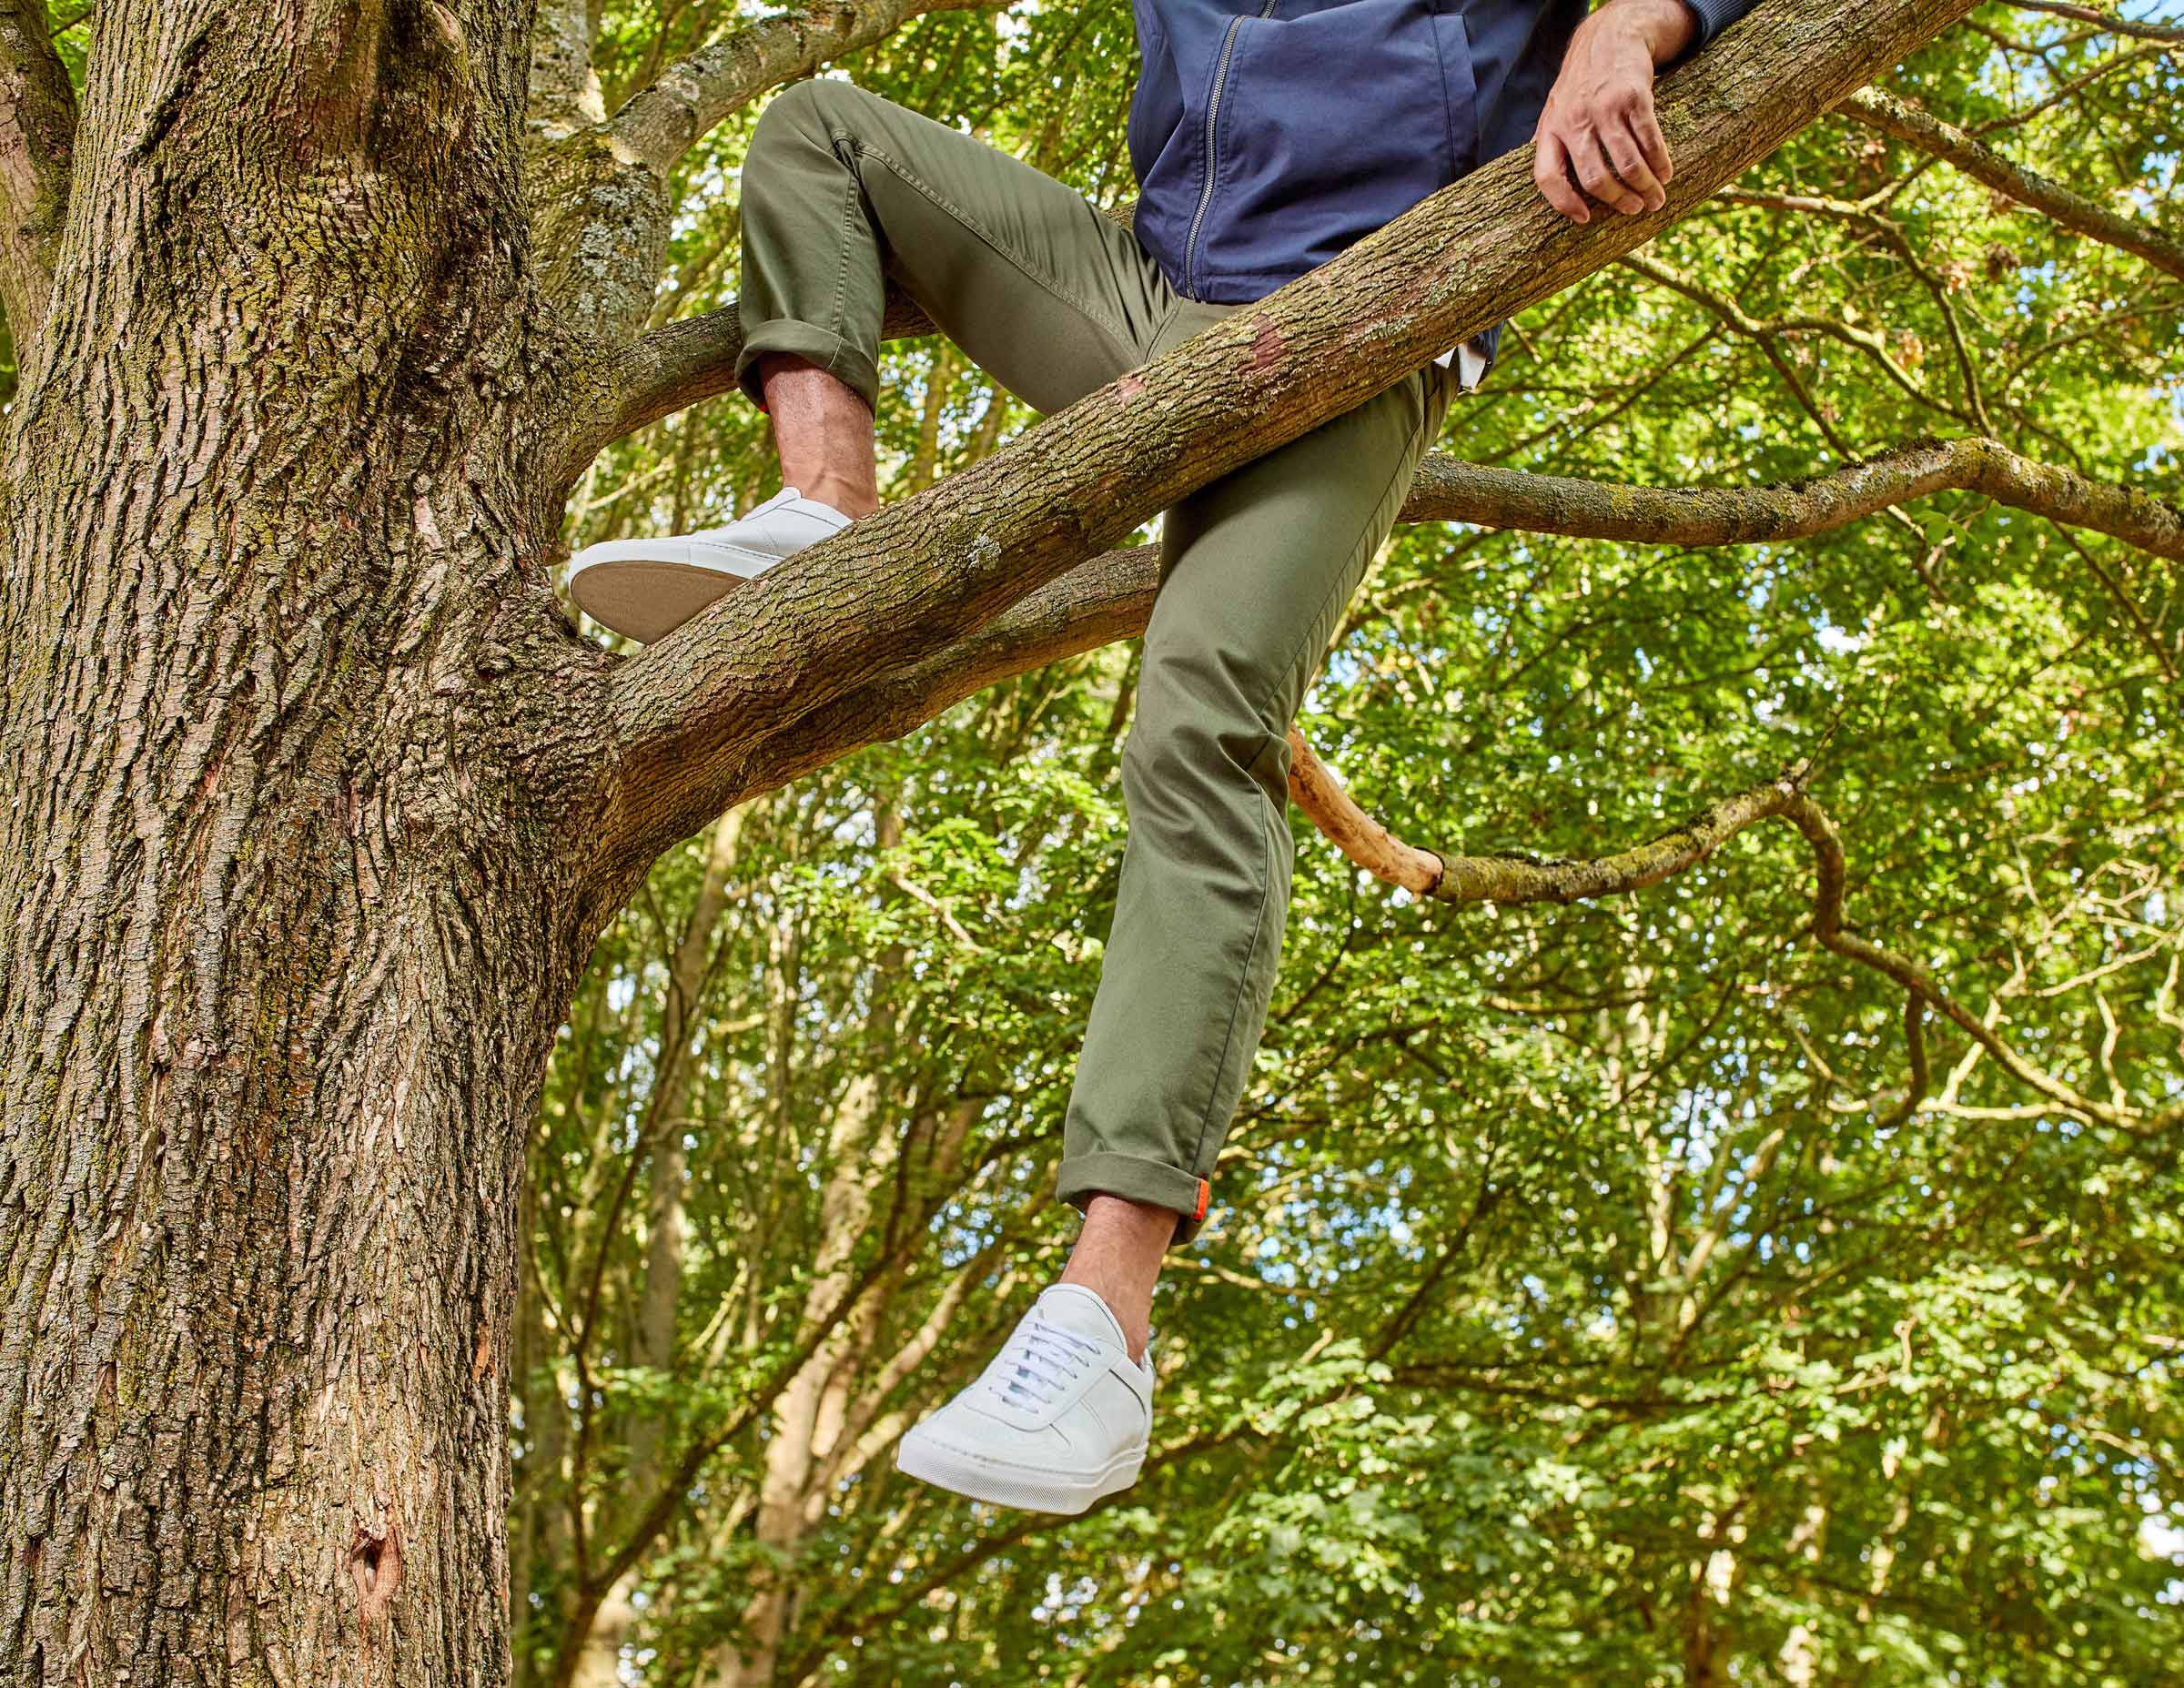 menswear model climbing tree in chinos